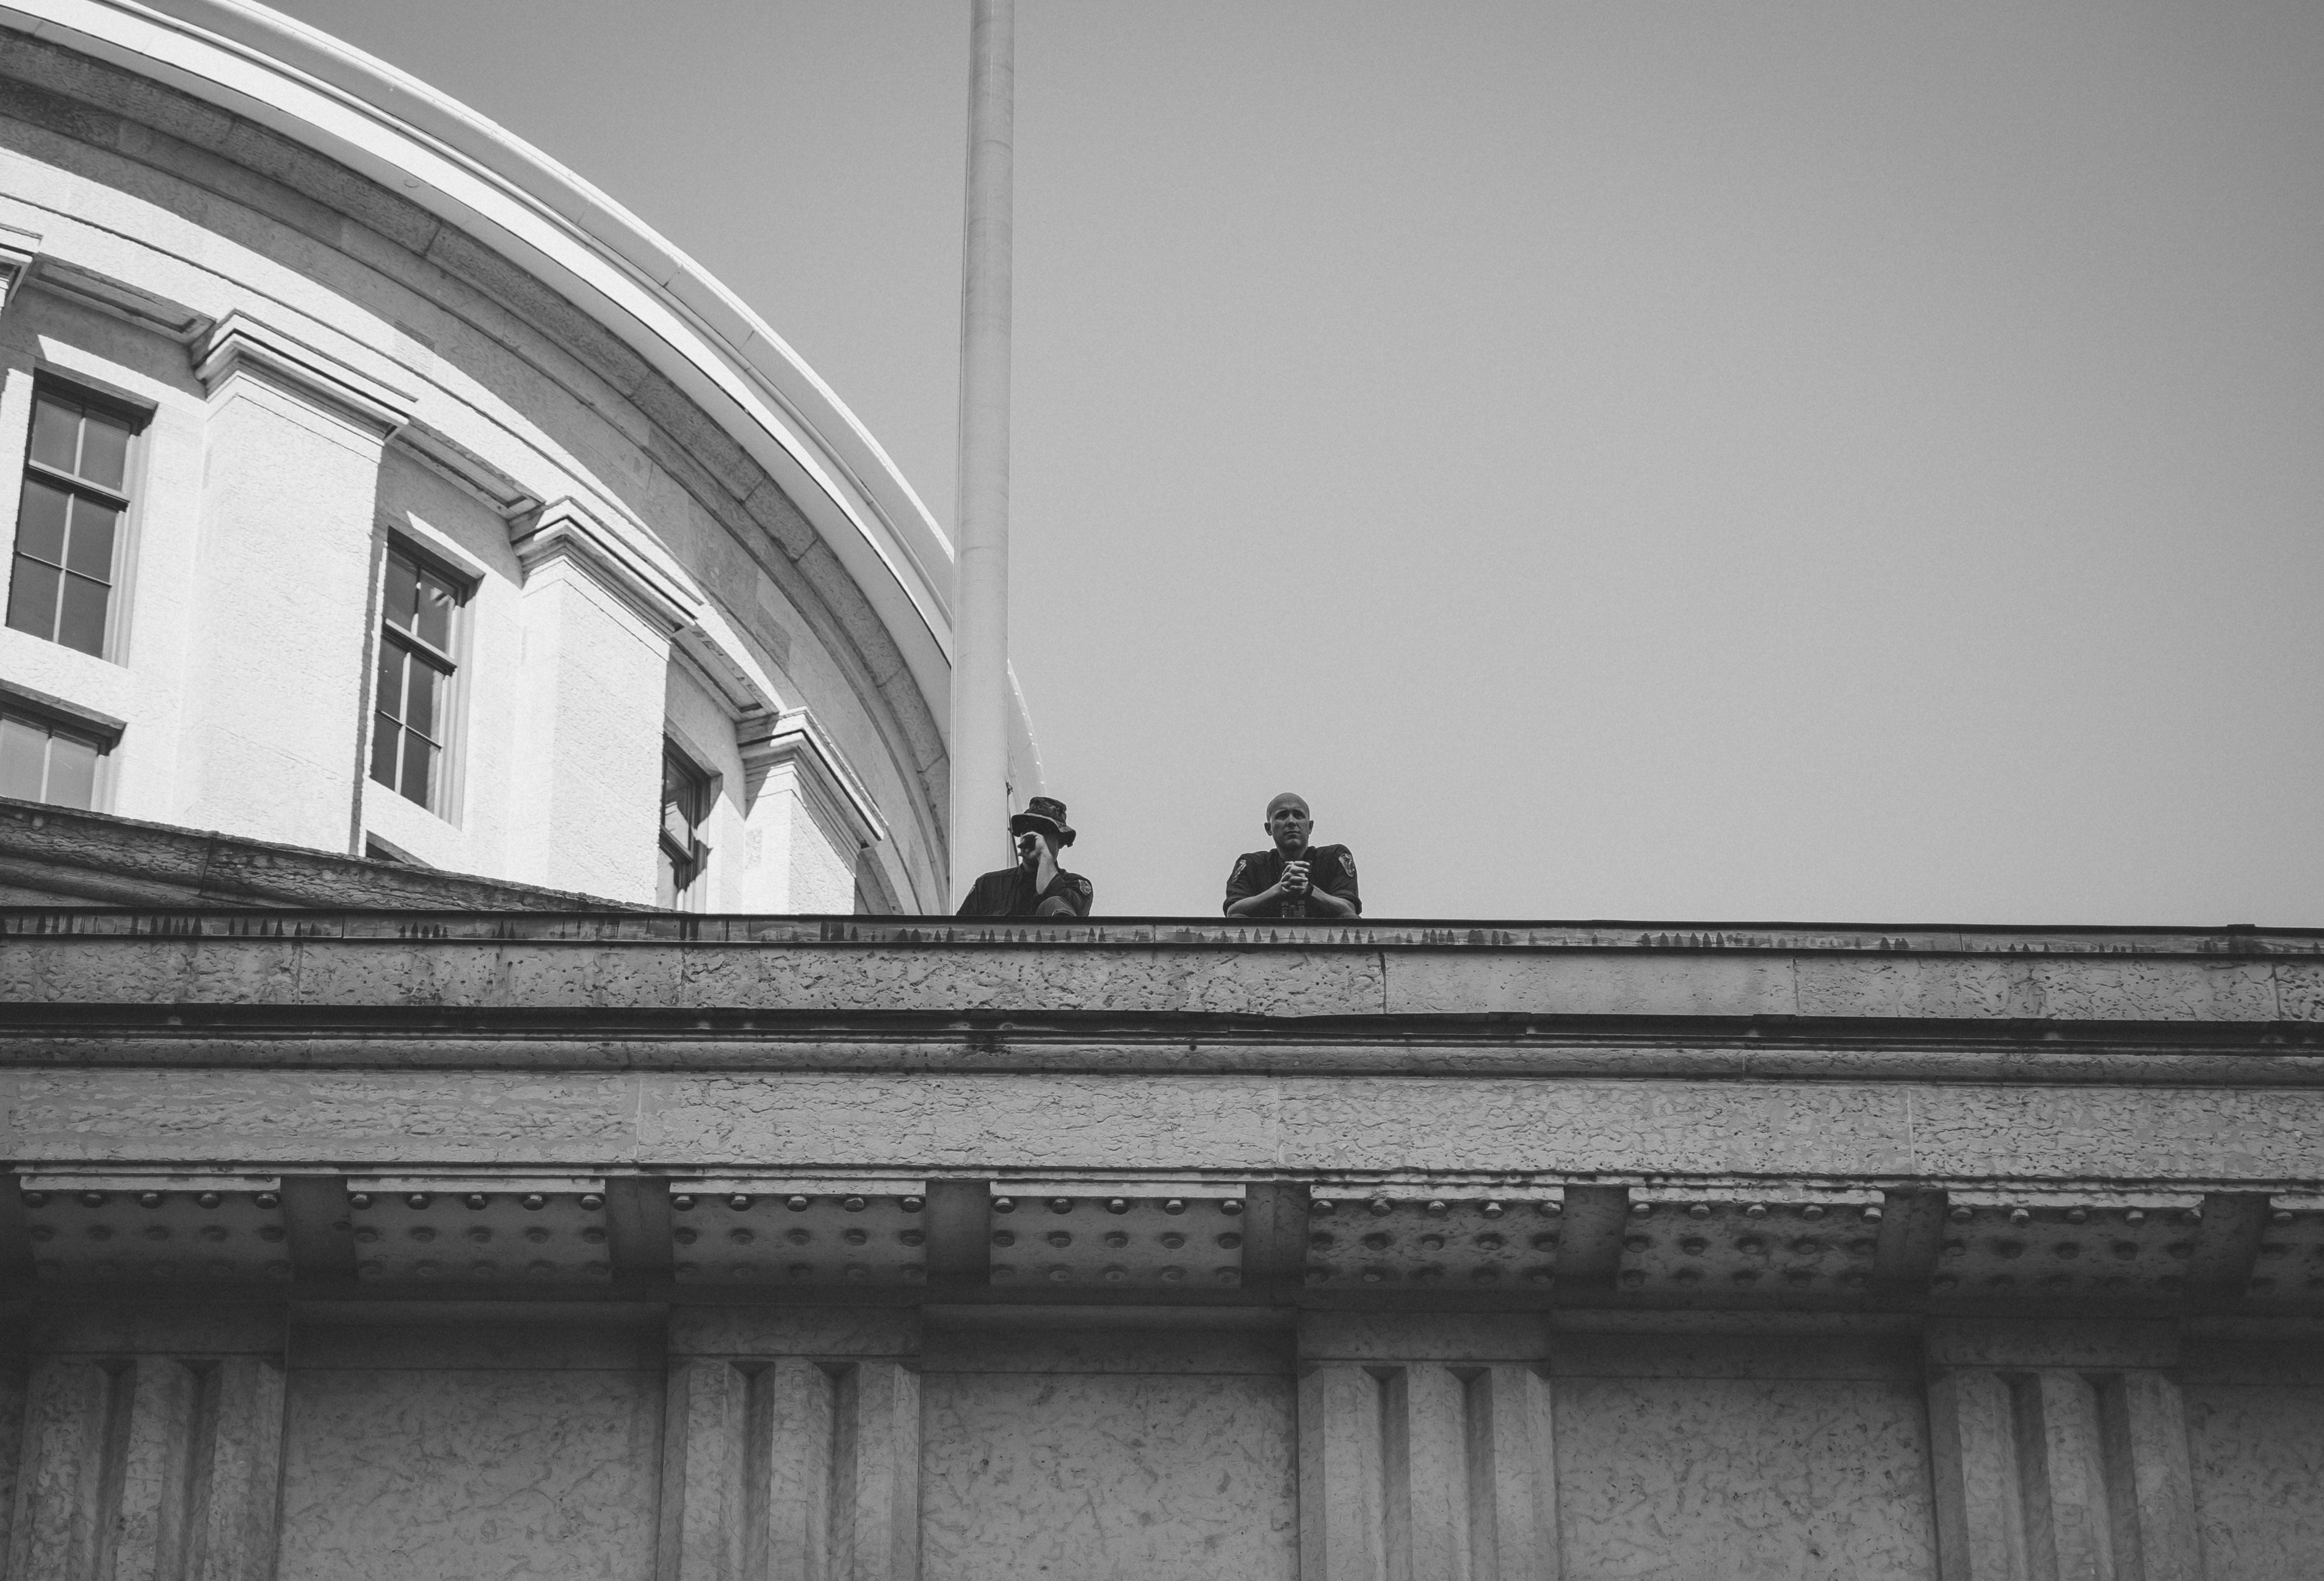 A black and white photo. In the middle of the image are two police offers overlooking BLM protests at the Ohio Statehouse. The viewer stands beneath them and sees the officers from the elbows up. The top right corner os the frame shows the dome of the Statehouse and the reminder of the top half shows and even gray-toned sky.